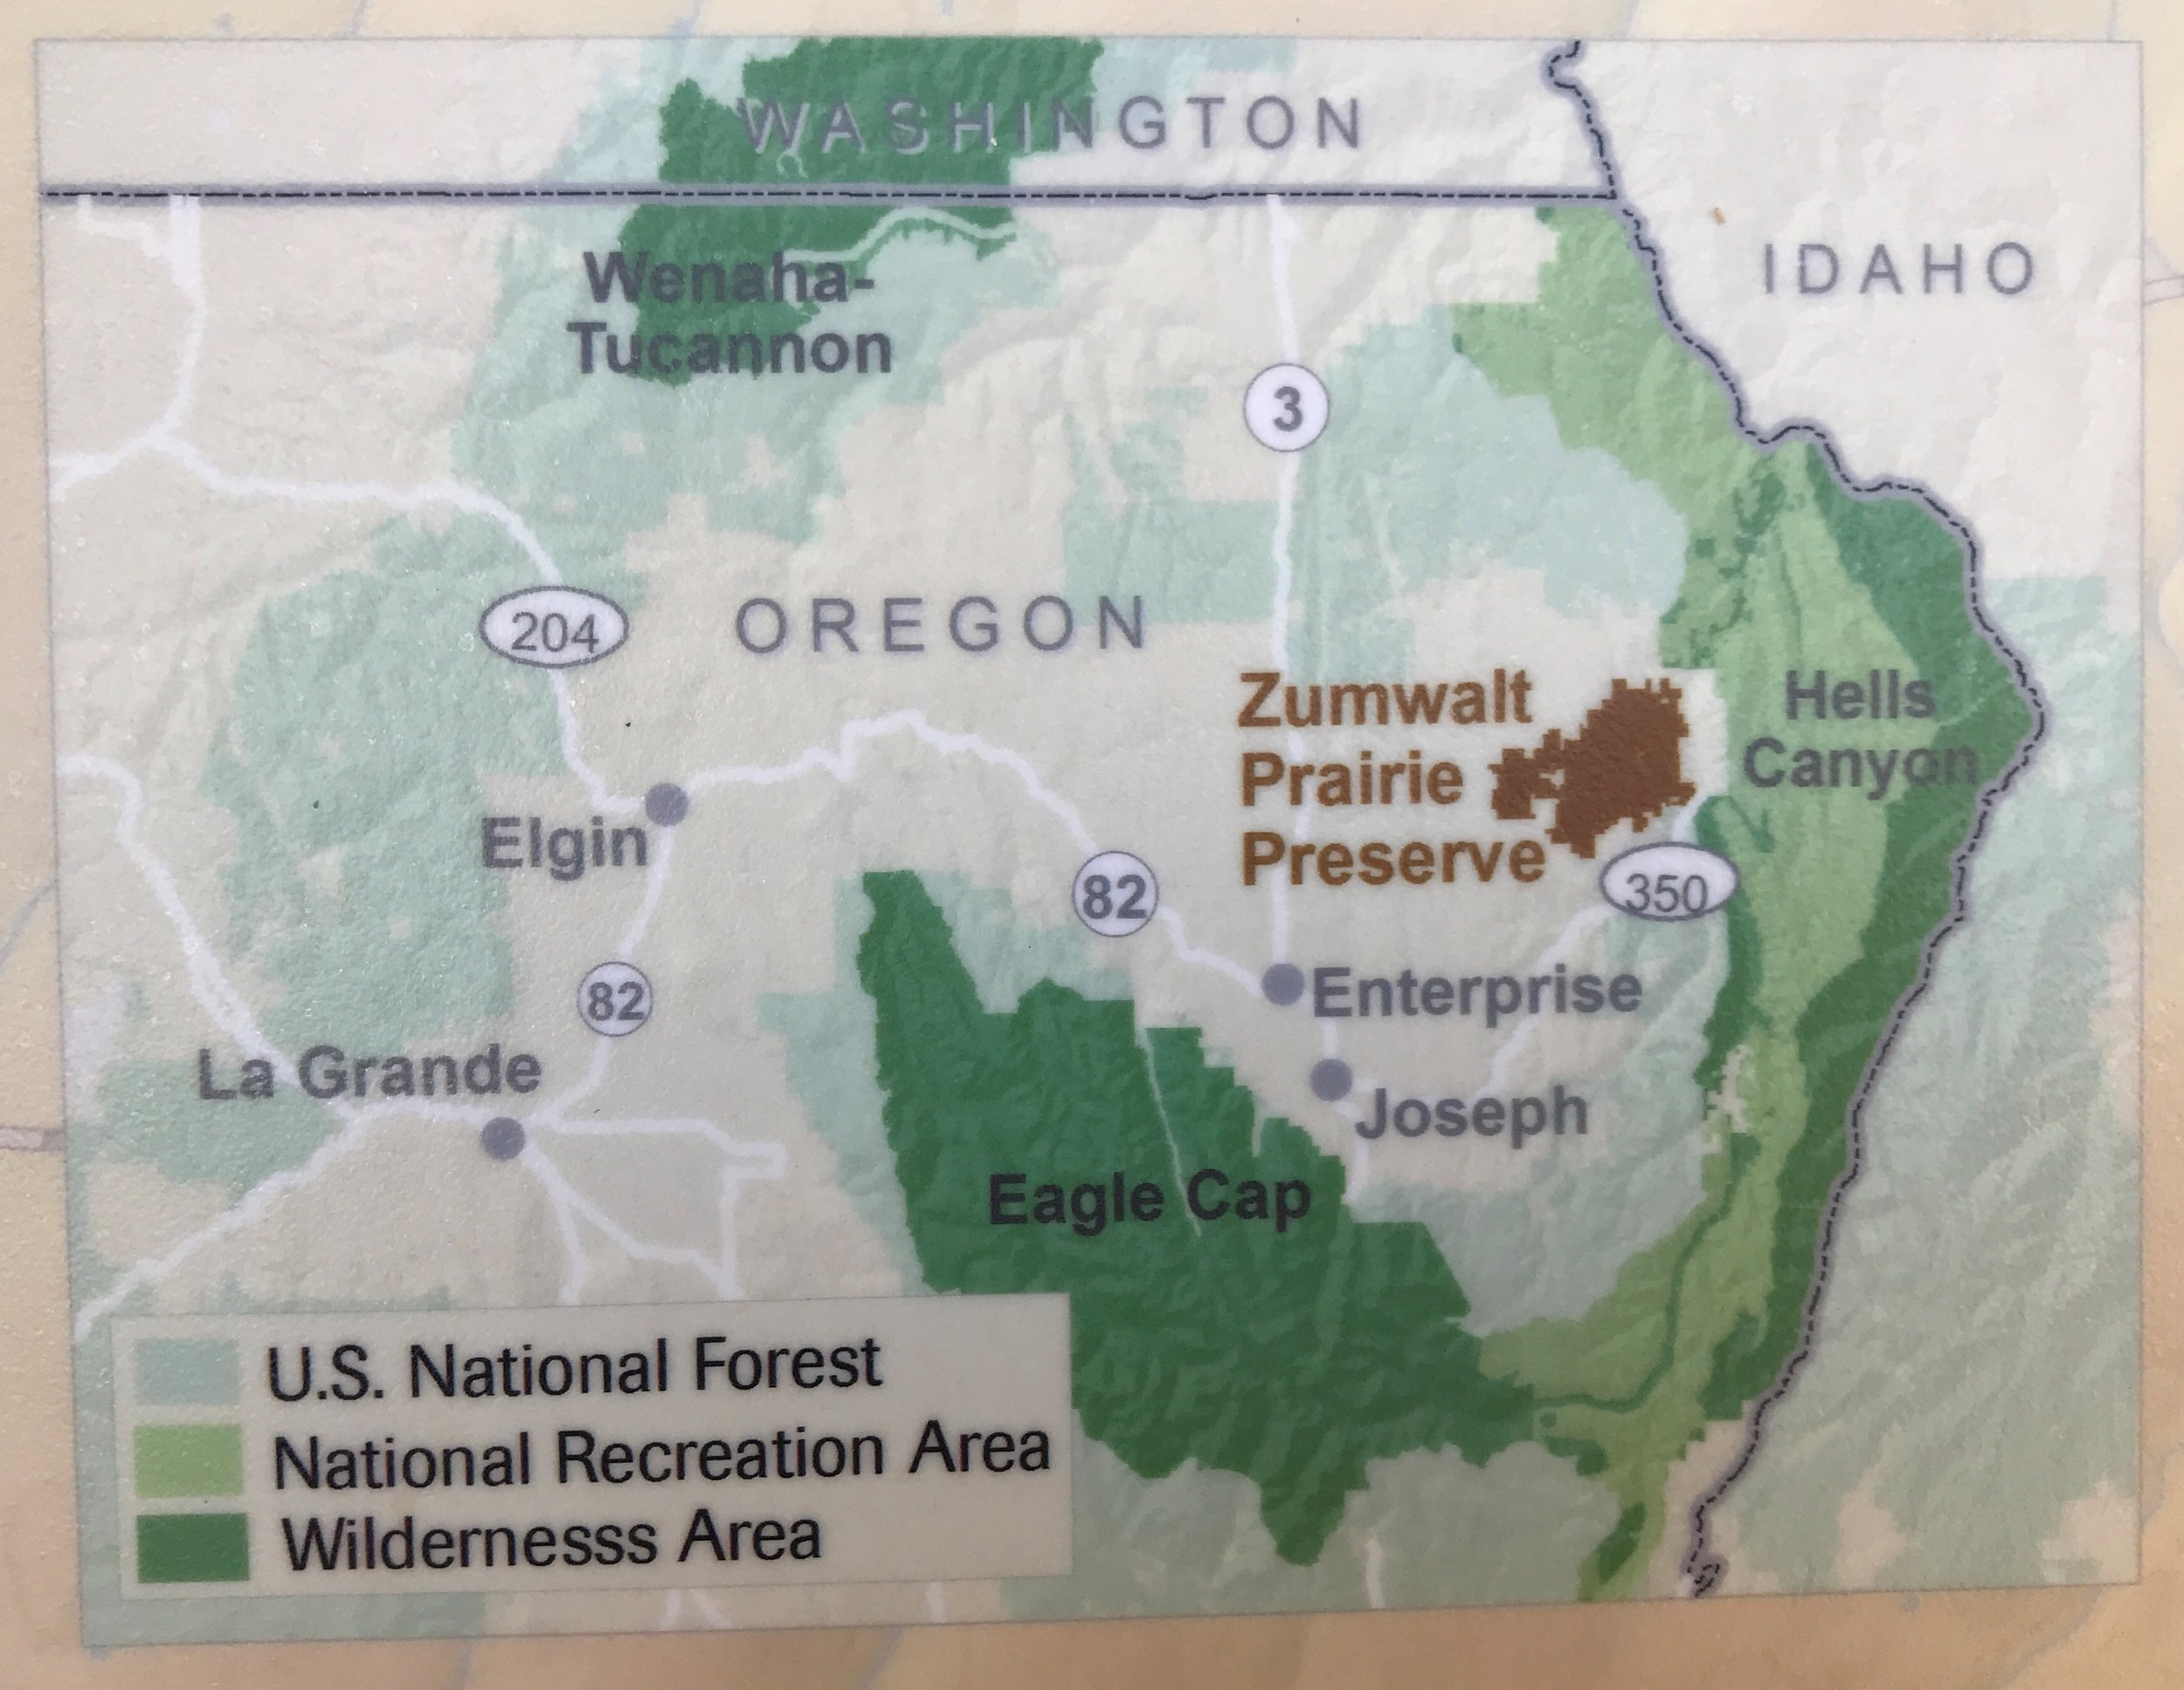 Zumwalt Prairie Preserve's large 51 square miles in far NE Oregon.  Note proximity to LaGrande, Enterprise, and the Hells Canyon National Recreation Area.